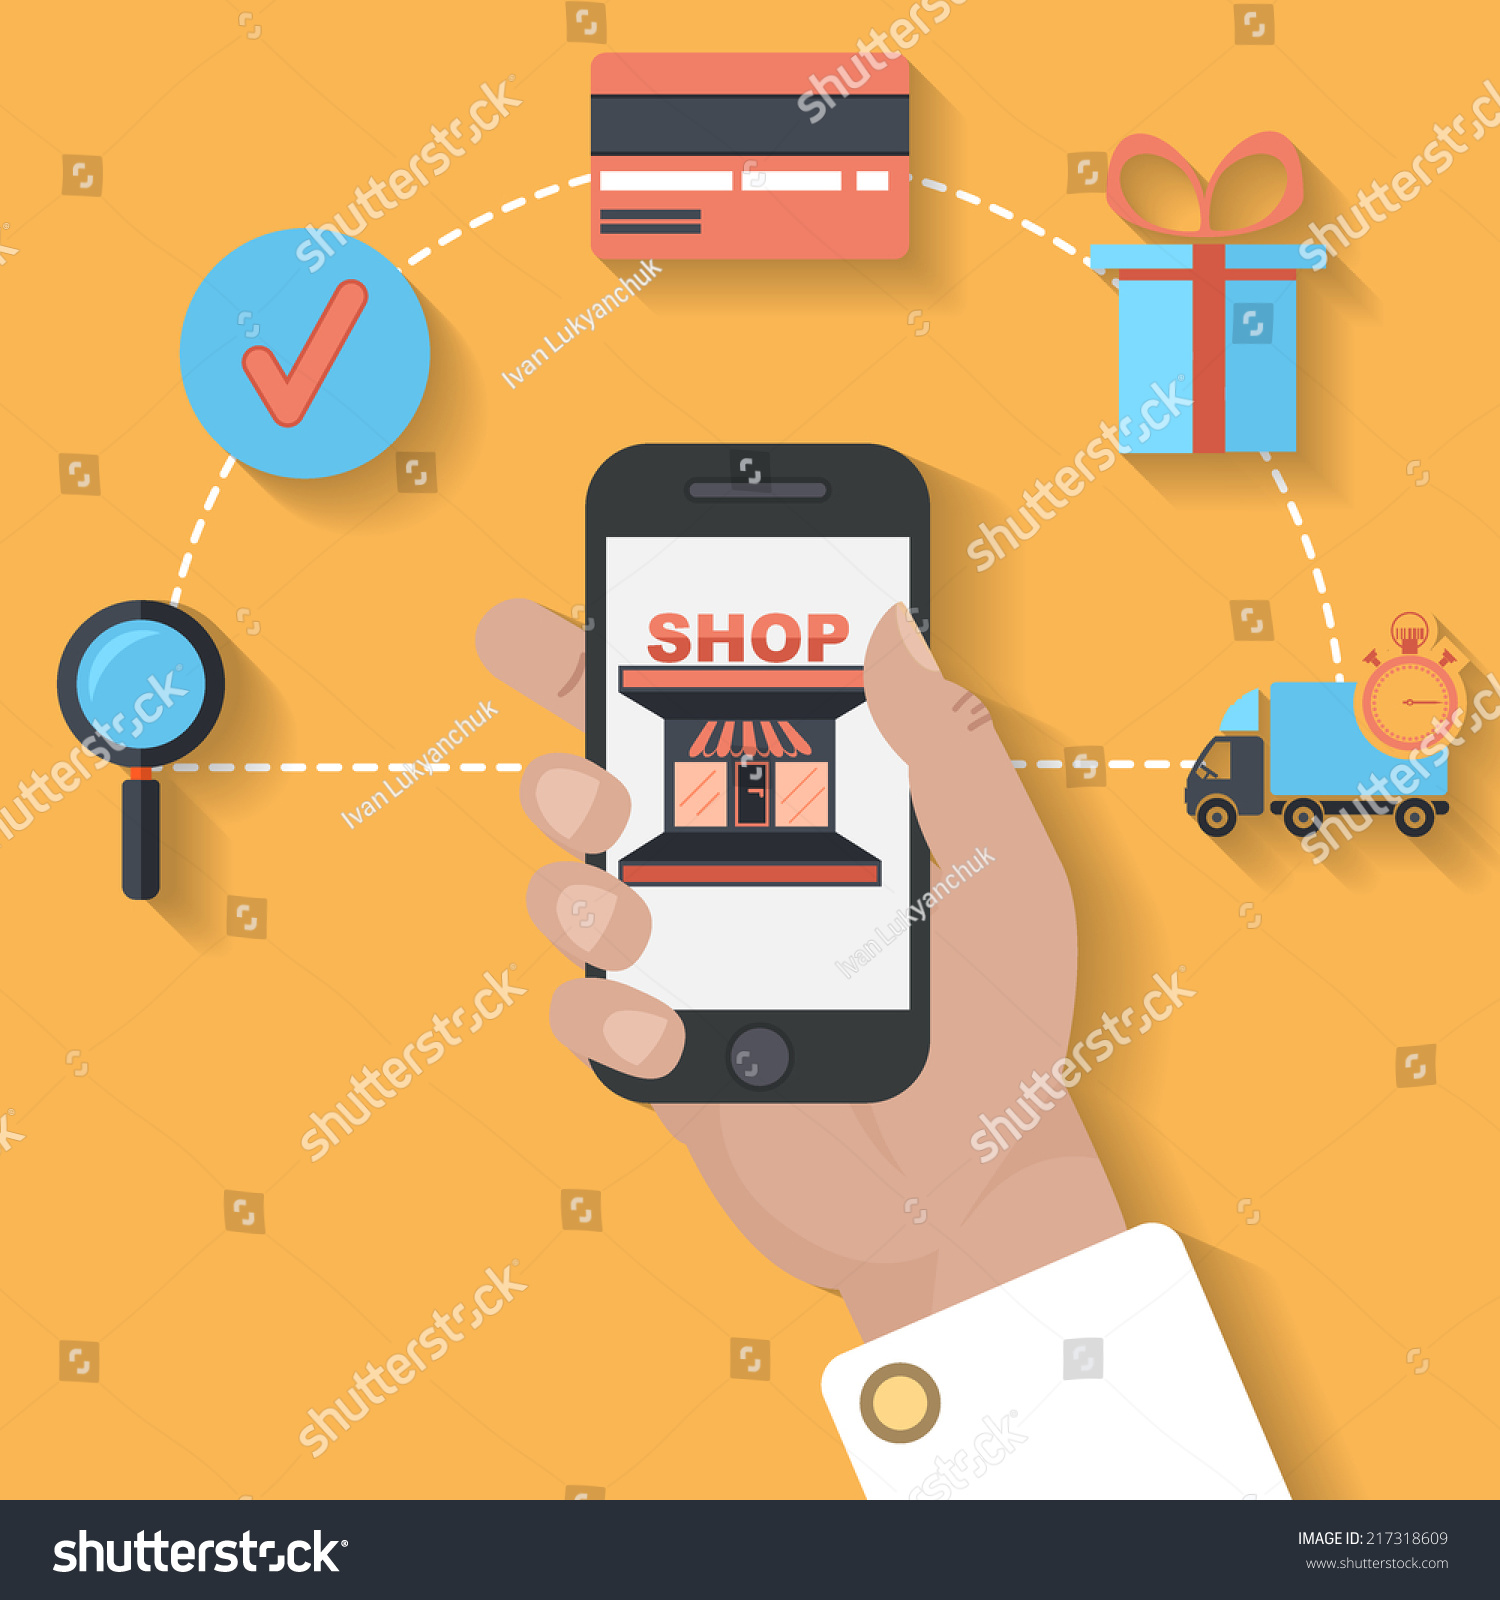 Ecommerce mobile payment concept flat design stock vector for E commerce mobili